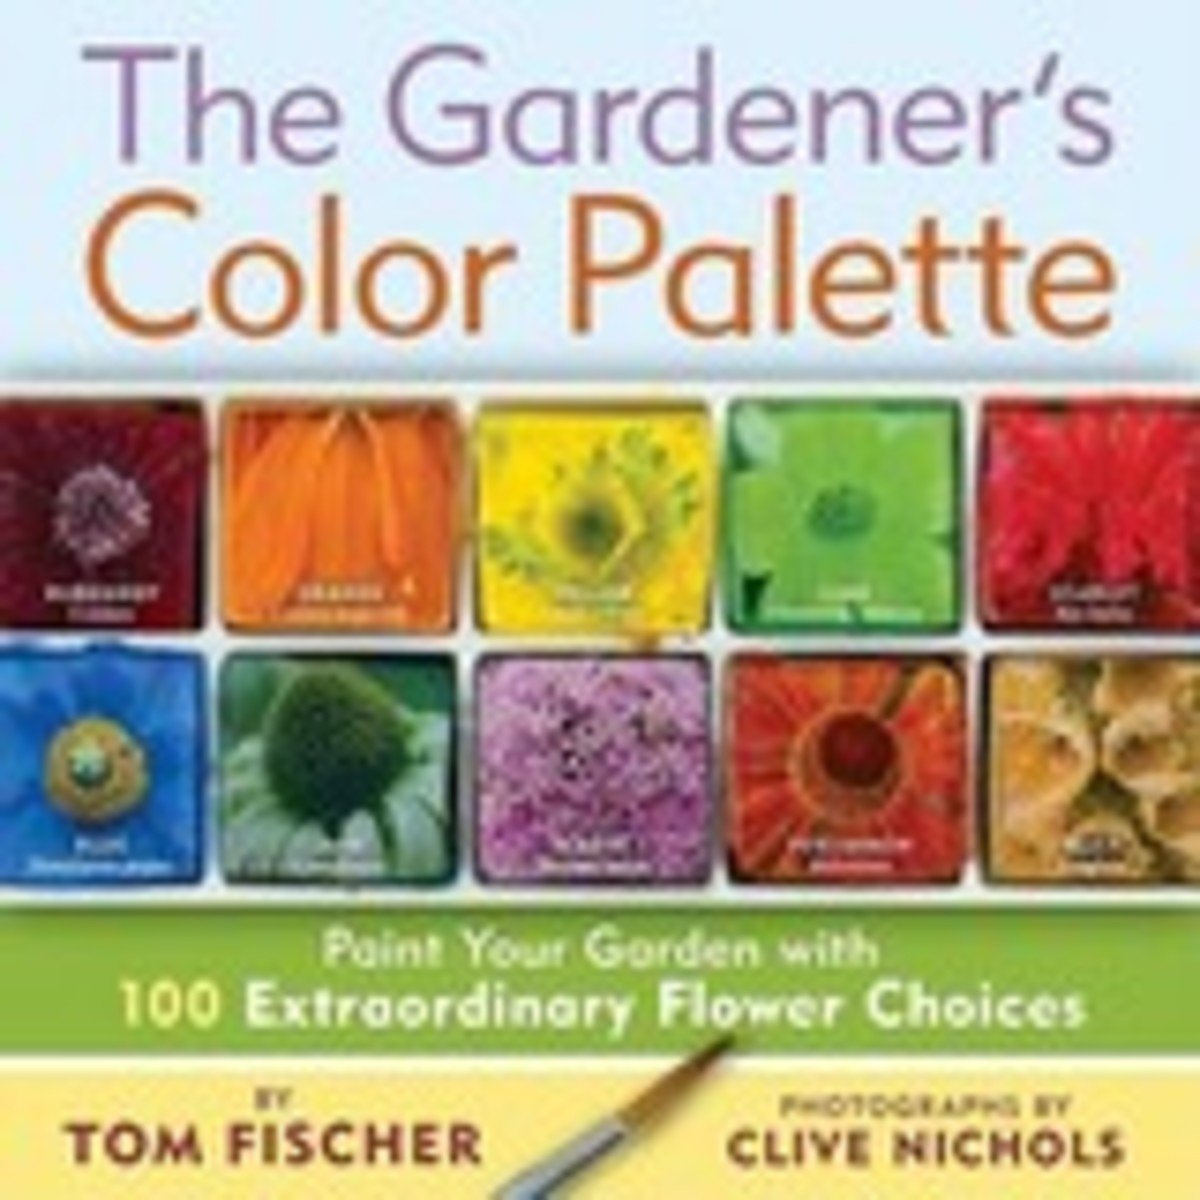 The Gardener's Color Palette